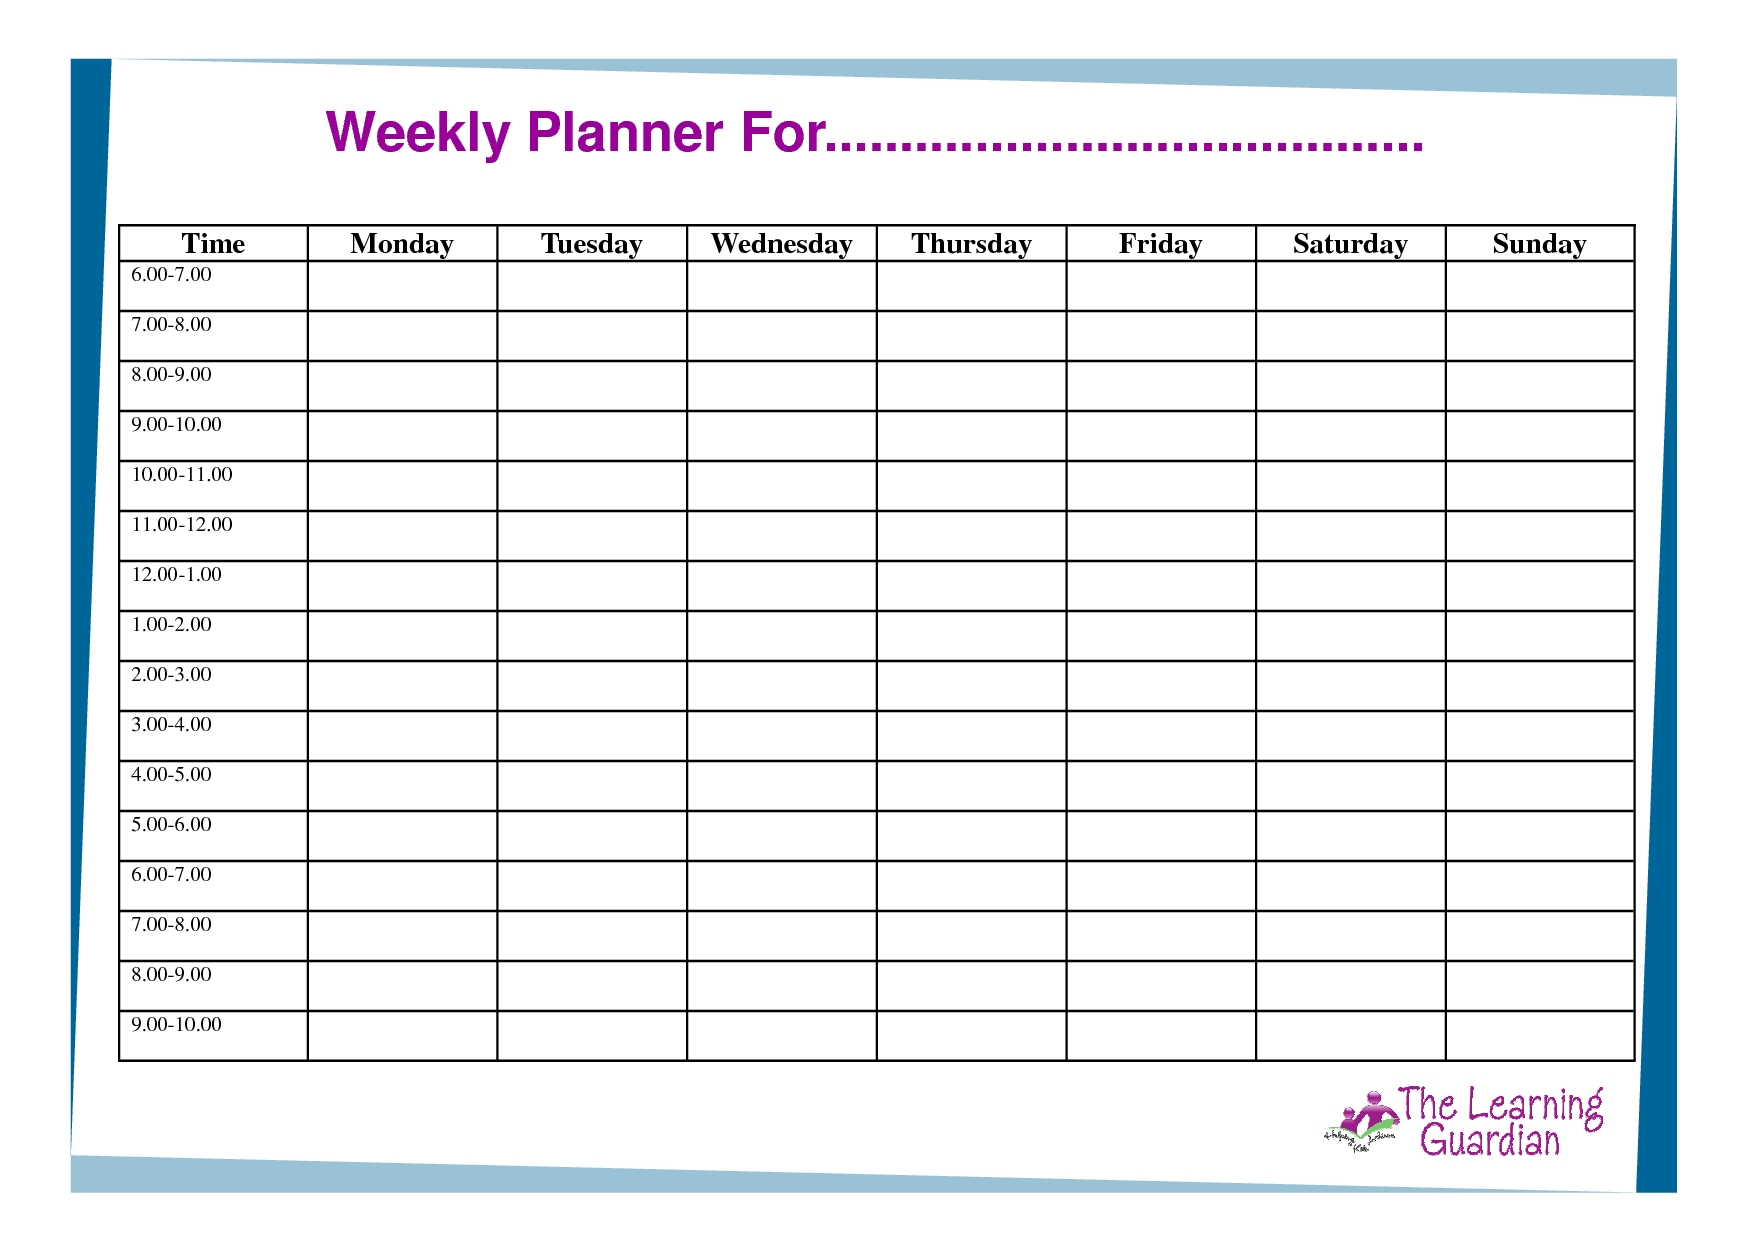 Online Daily Time Slot Planner  Template Calendar Design in Daily Calendar With 15 Minute Time Slots